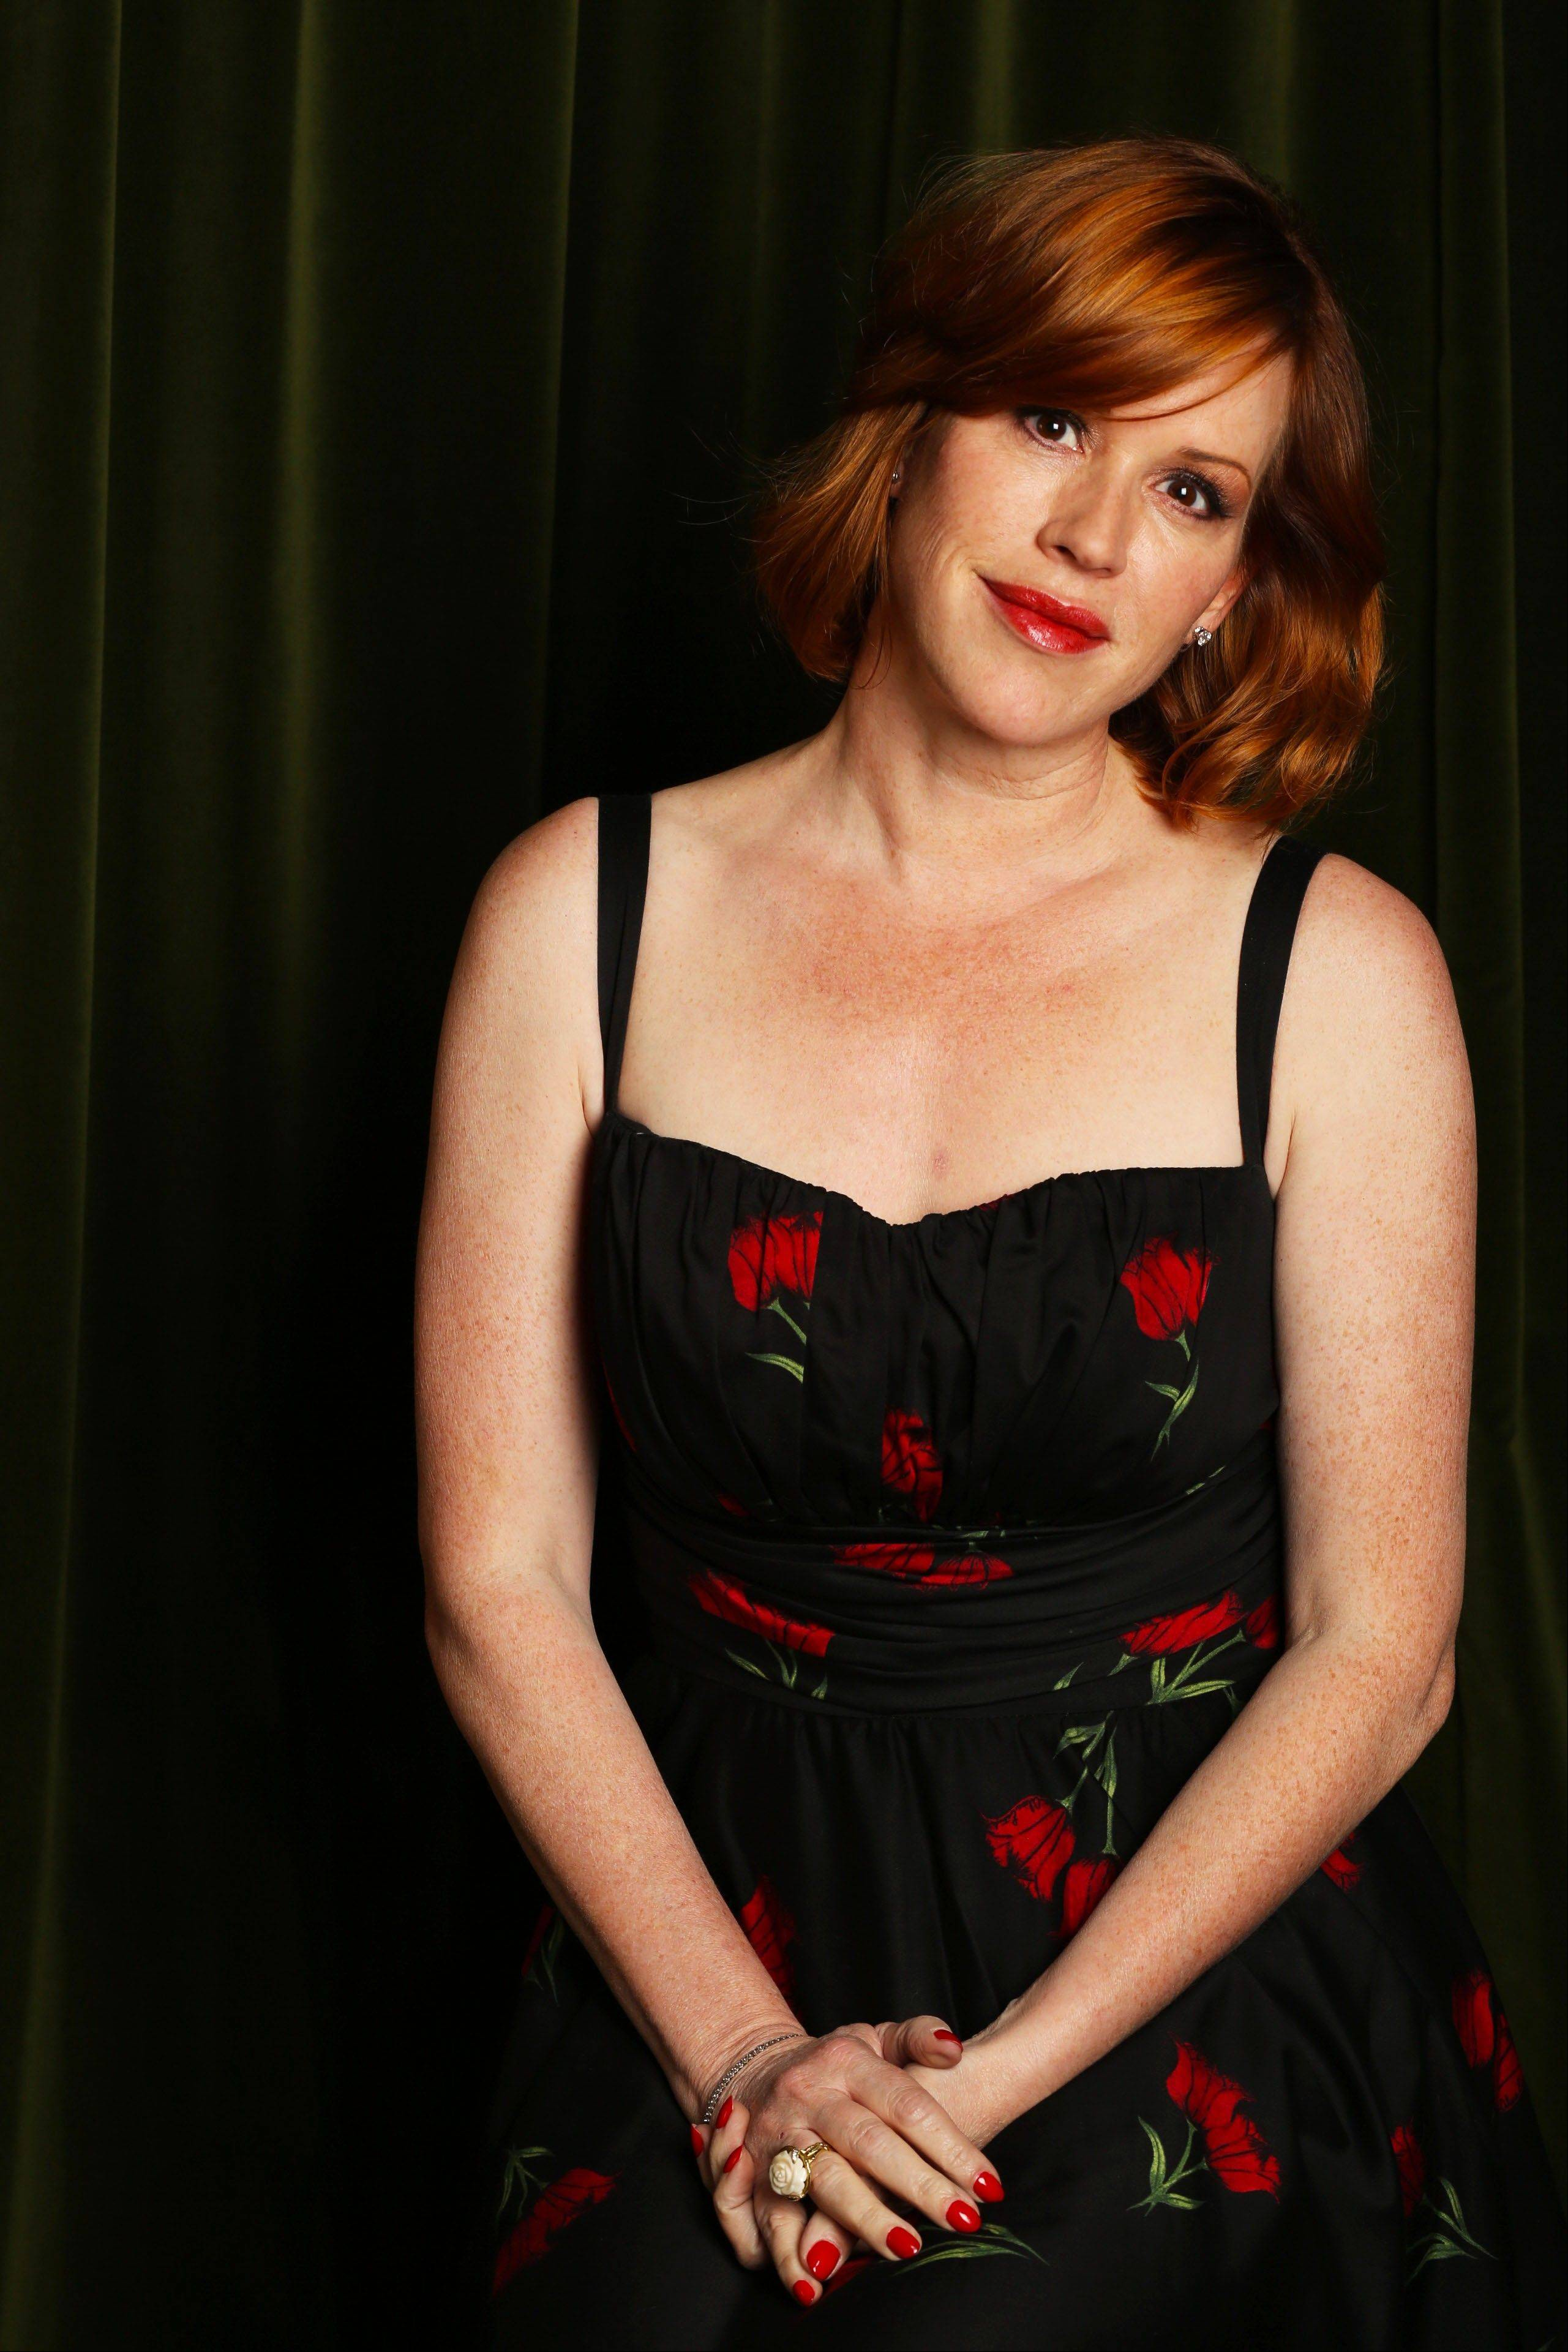 Actress-singer Molly Ringwald performs cabaret standards at the Arcada Theatre in St. Charles on Saturday, Oct. 5.